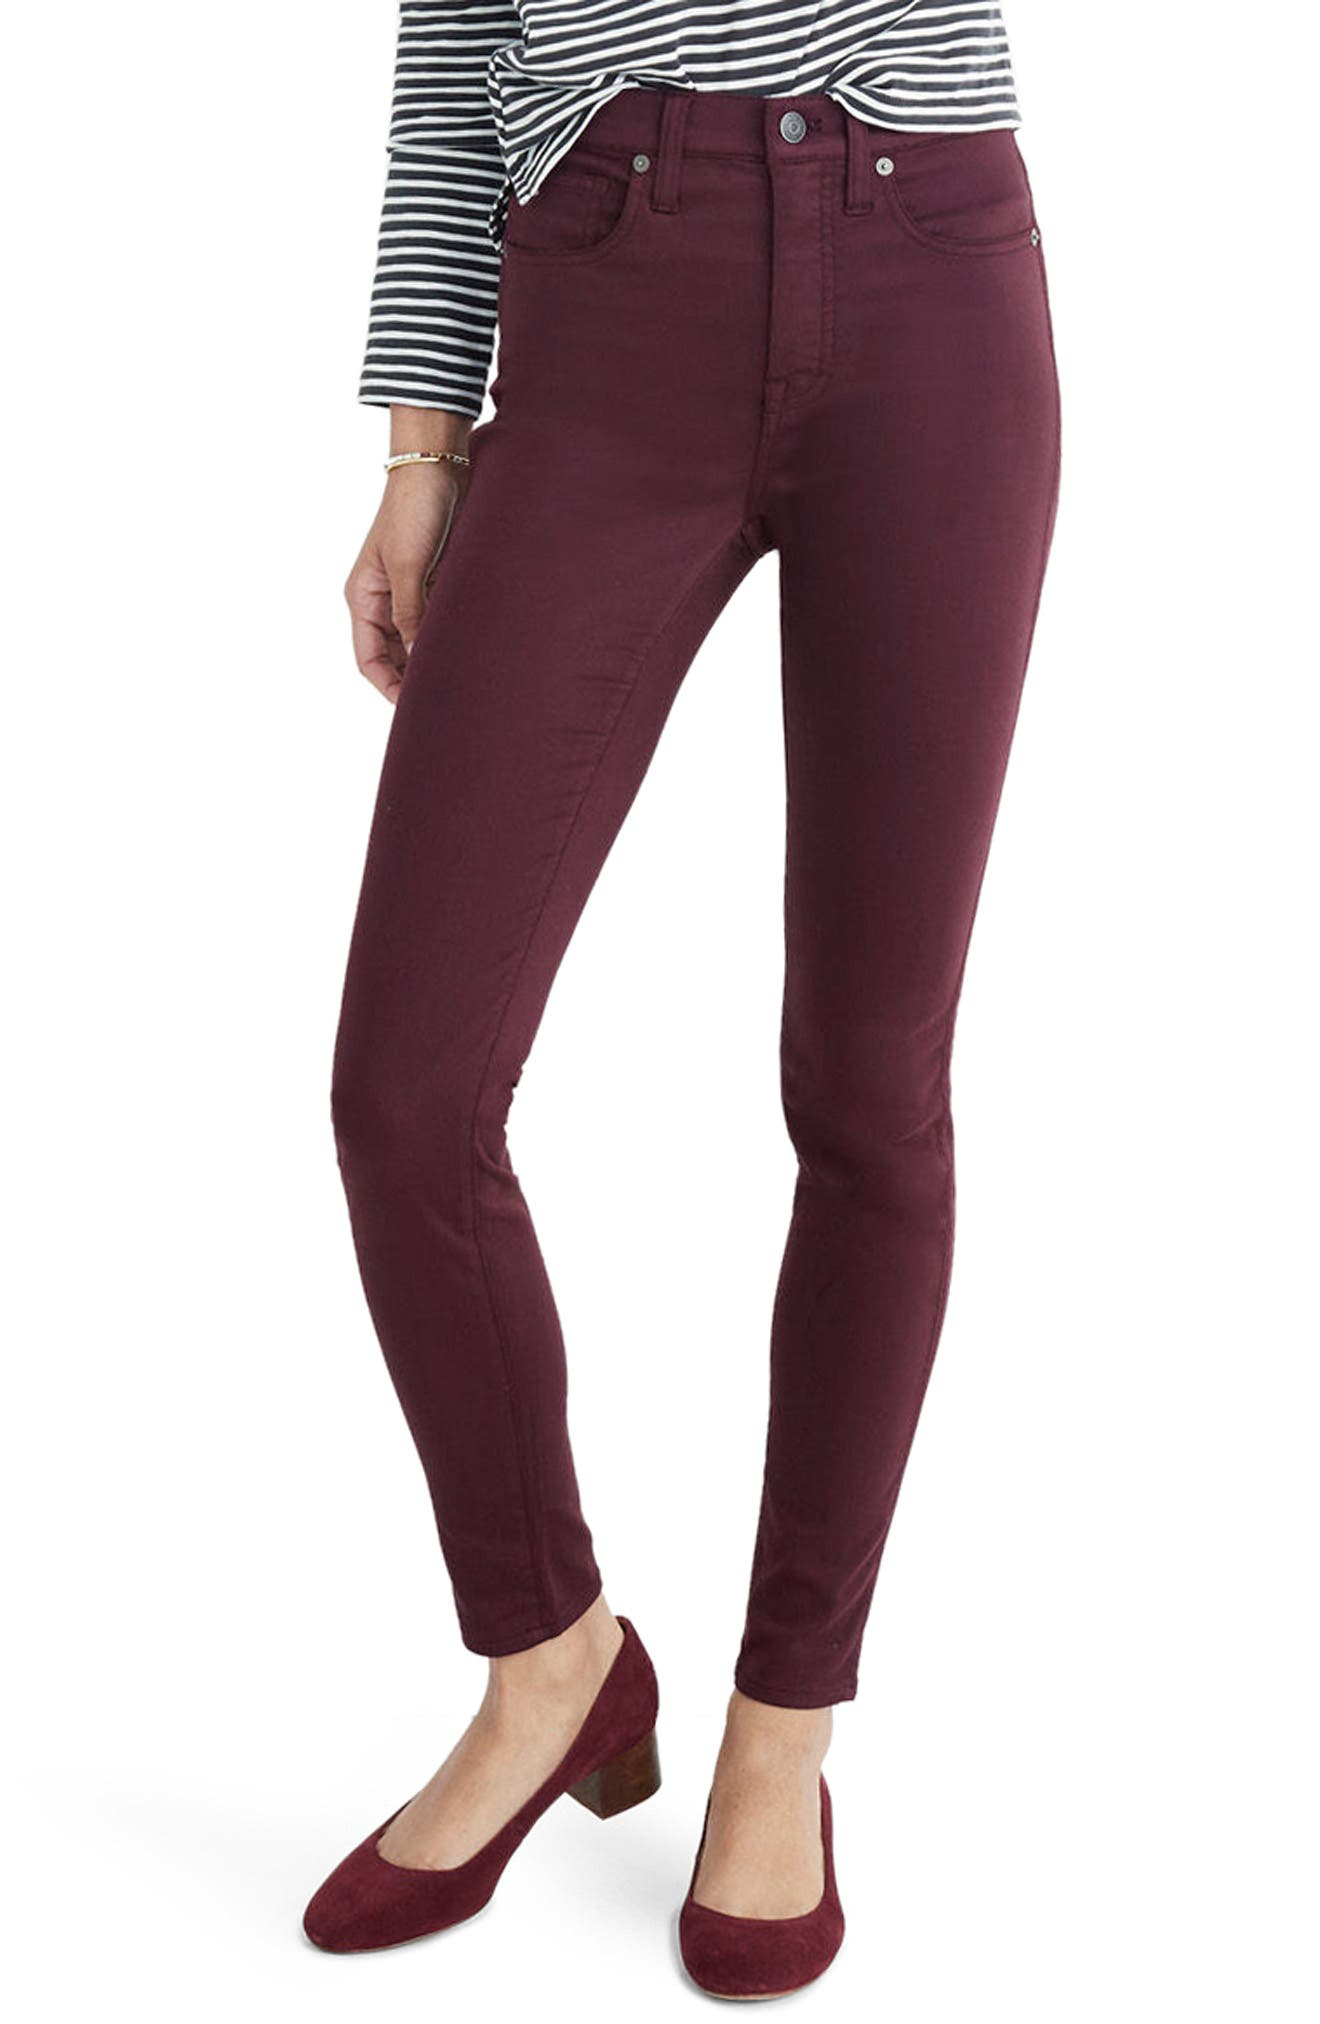 10-Inch High Waist Skinny Sateen Jeans,                             Main thumbnail 1, color,                             500